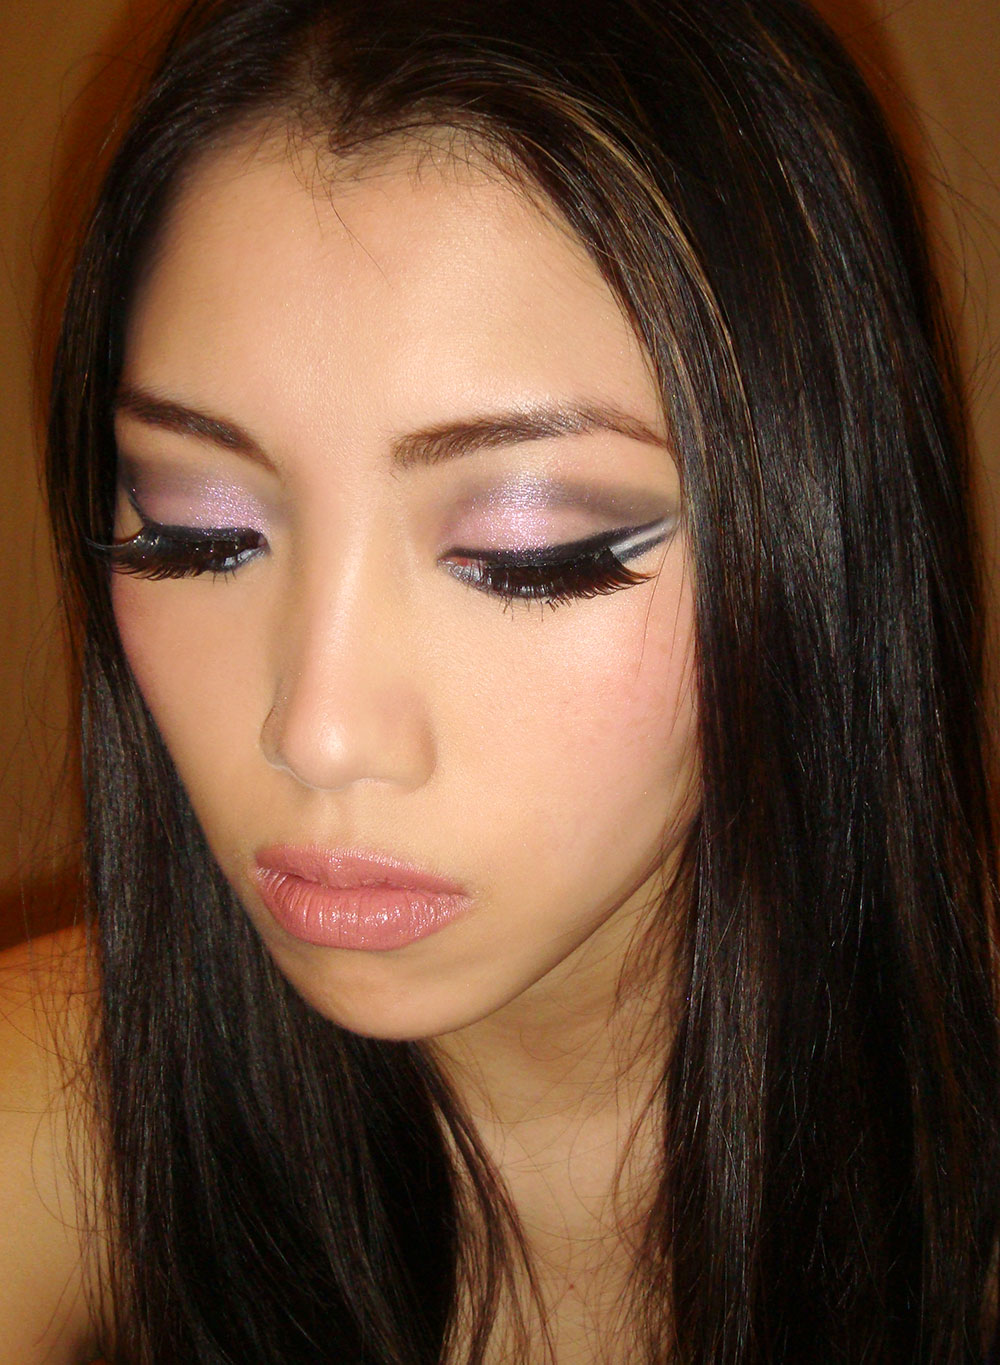 Christina Aguilera glitter eye makeup breakdown